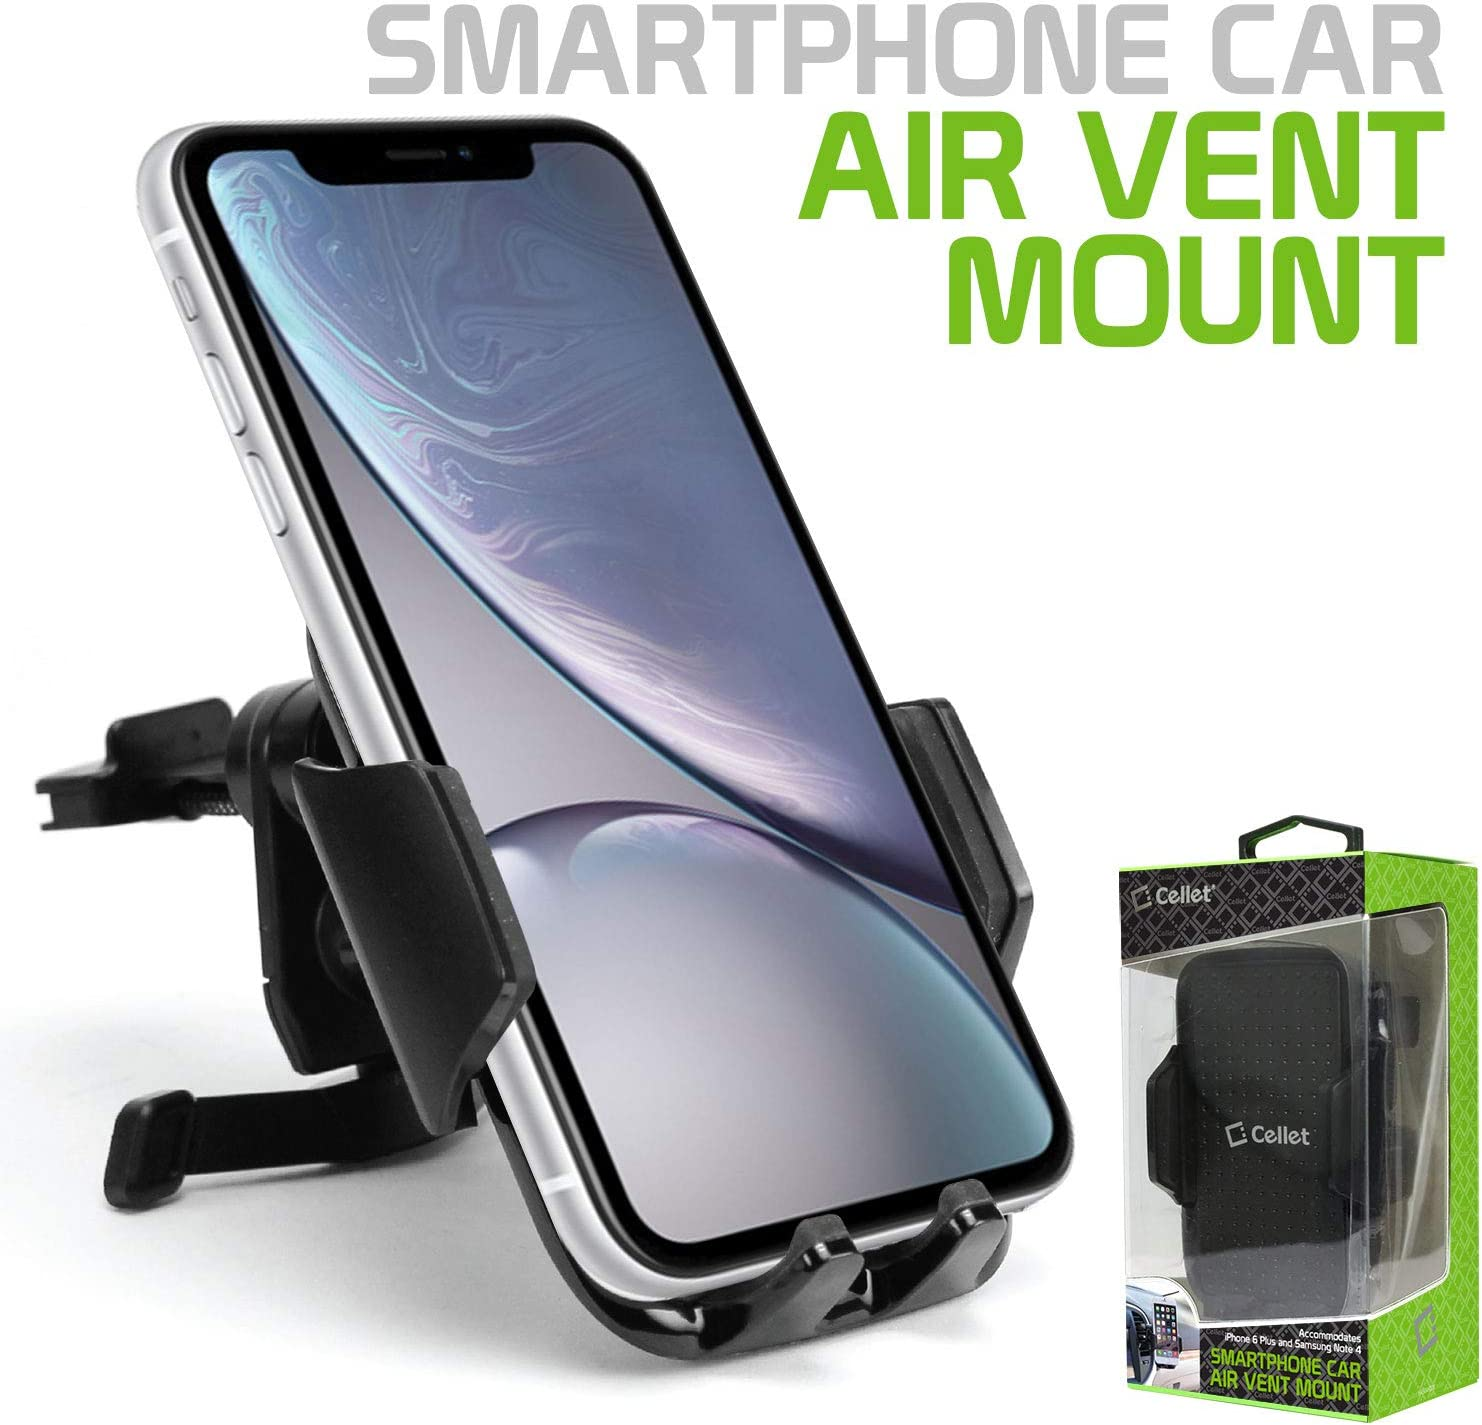 J2 S9 S8 Pixel 4 3 XL Cellet Vehicle Air Vent Phone Holder One Touch Universal Cradle Compatible With iPhone 11 Pro Max Xr Xs Max Xs X SE 8 Plus 7 6S Note 10 5G 9 8 Galaxy S10 5G S10 S10e S10